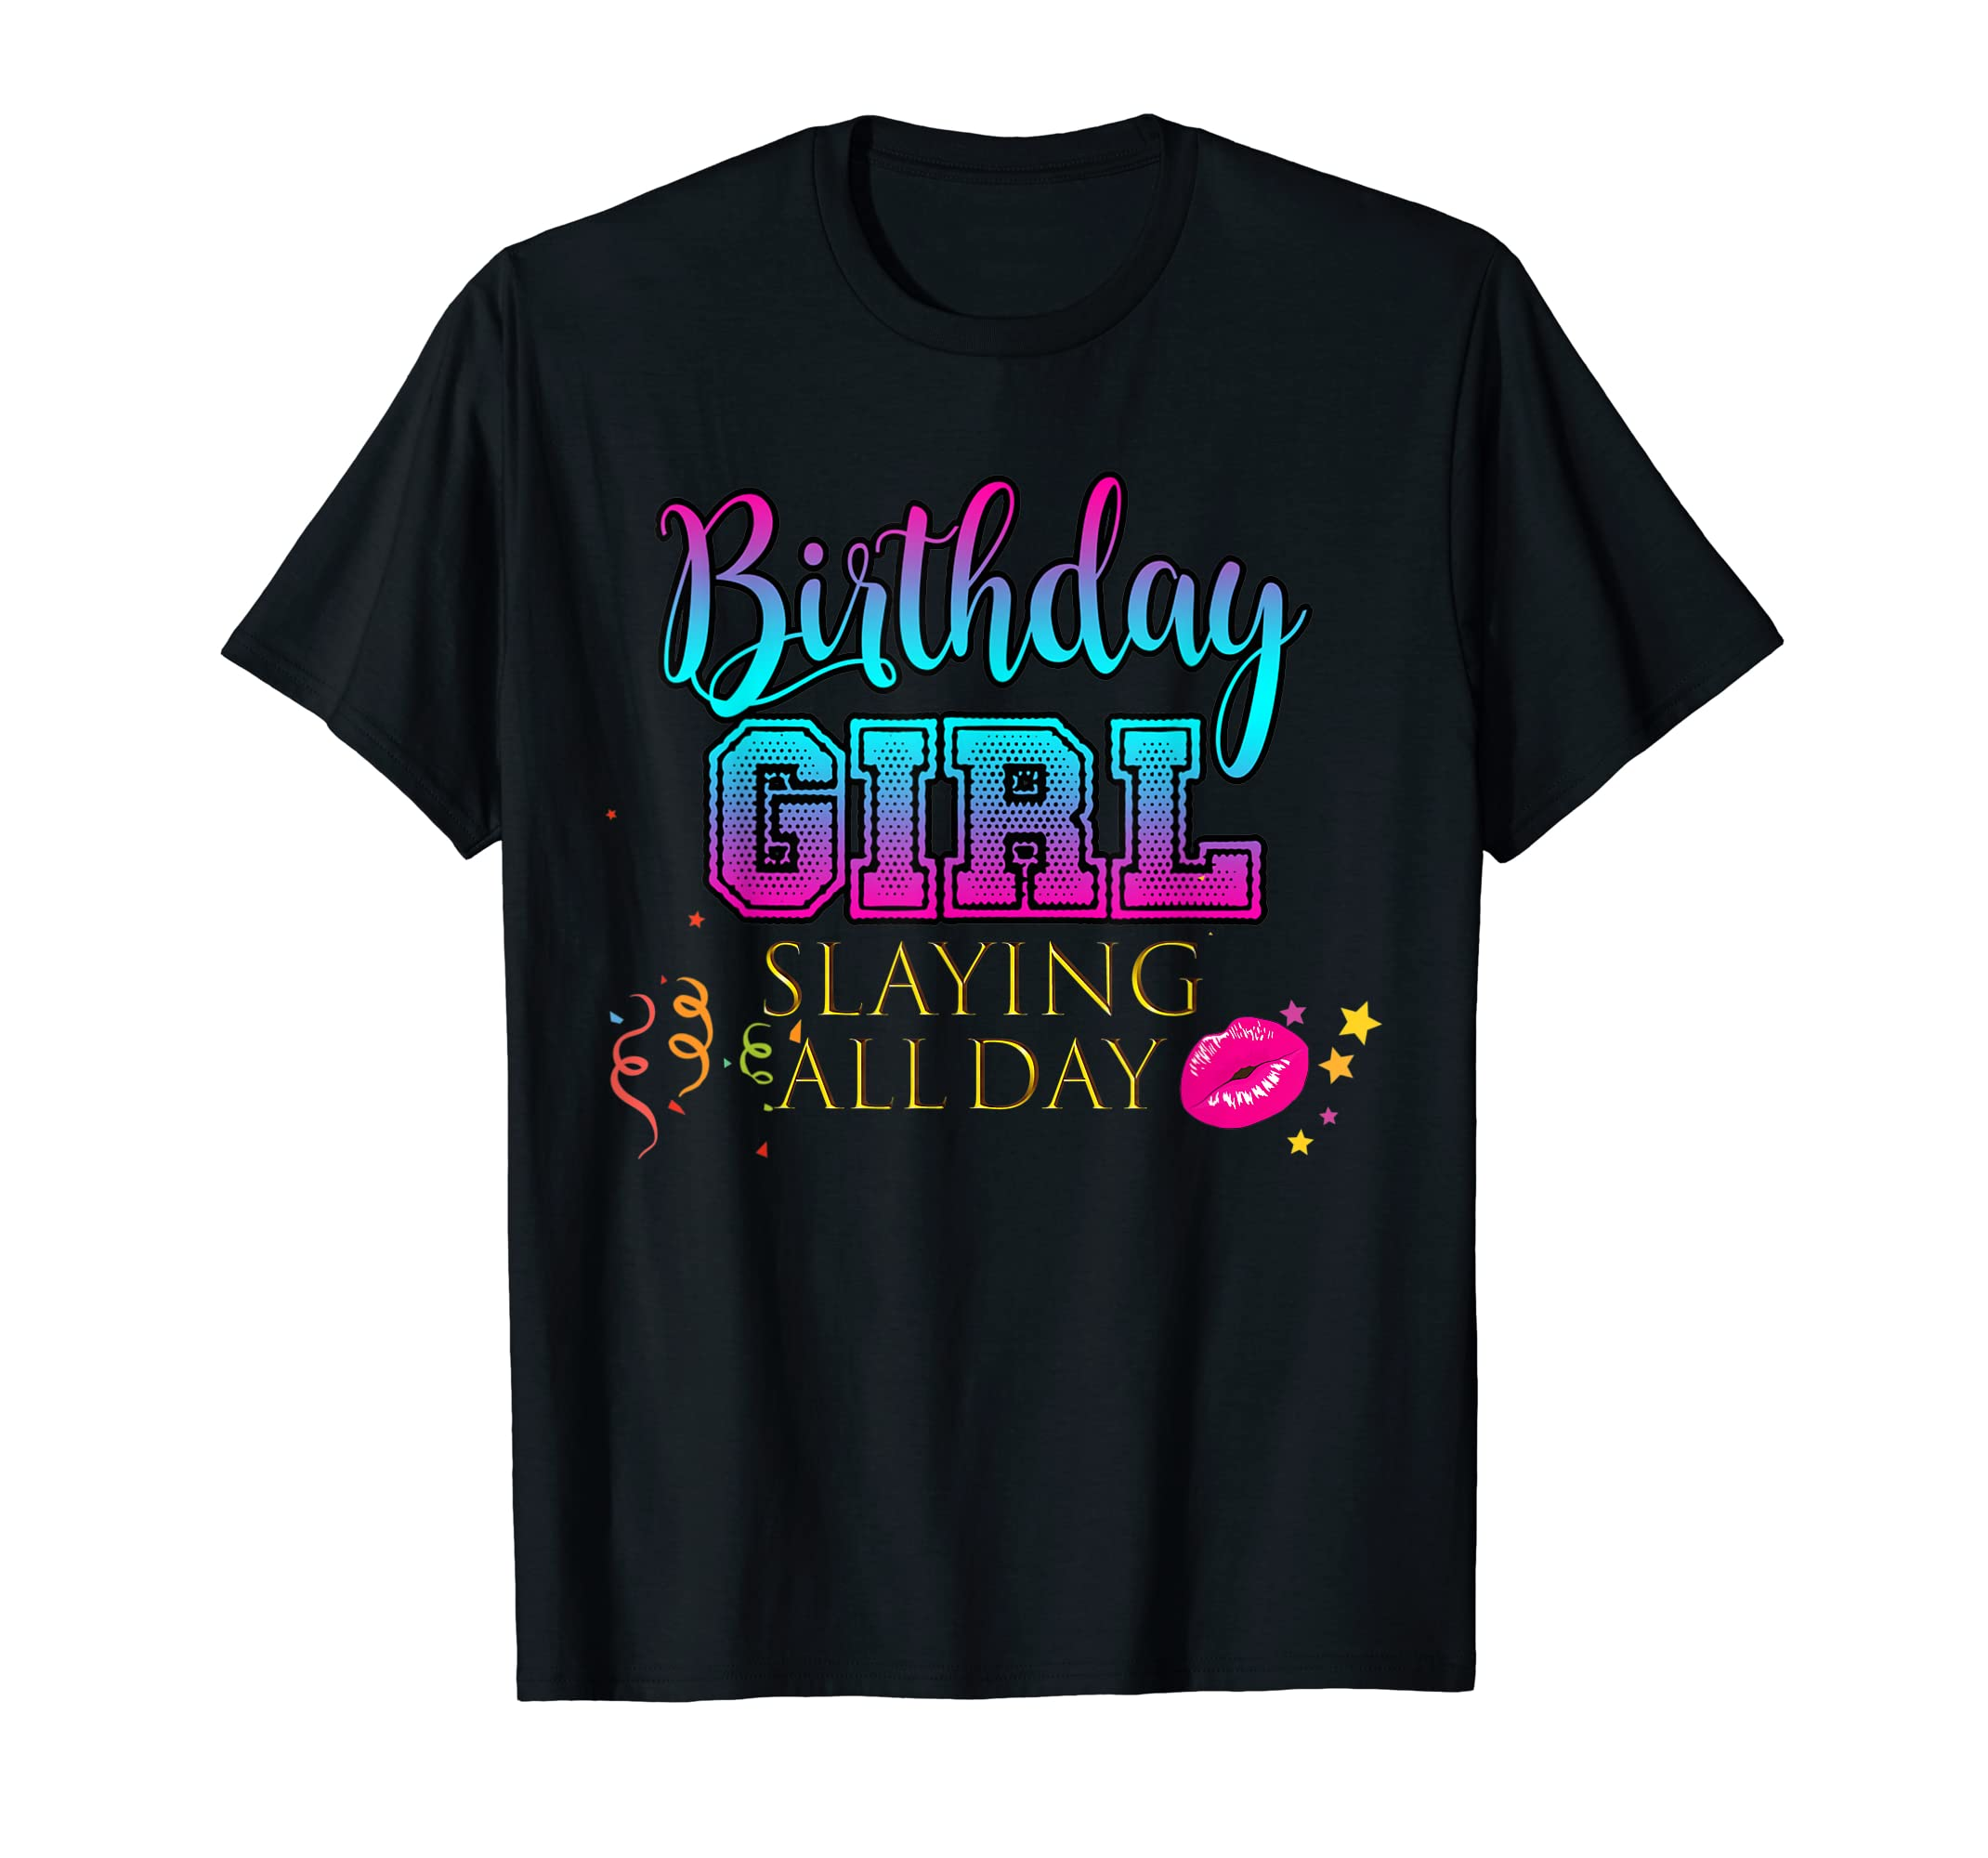 f3dfd78d0 Amazon.com: Birthday Girl Slaying All Day Shirt CUTE Women Party Outfit:  Clothing